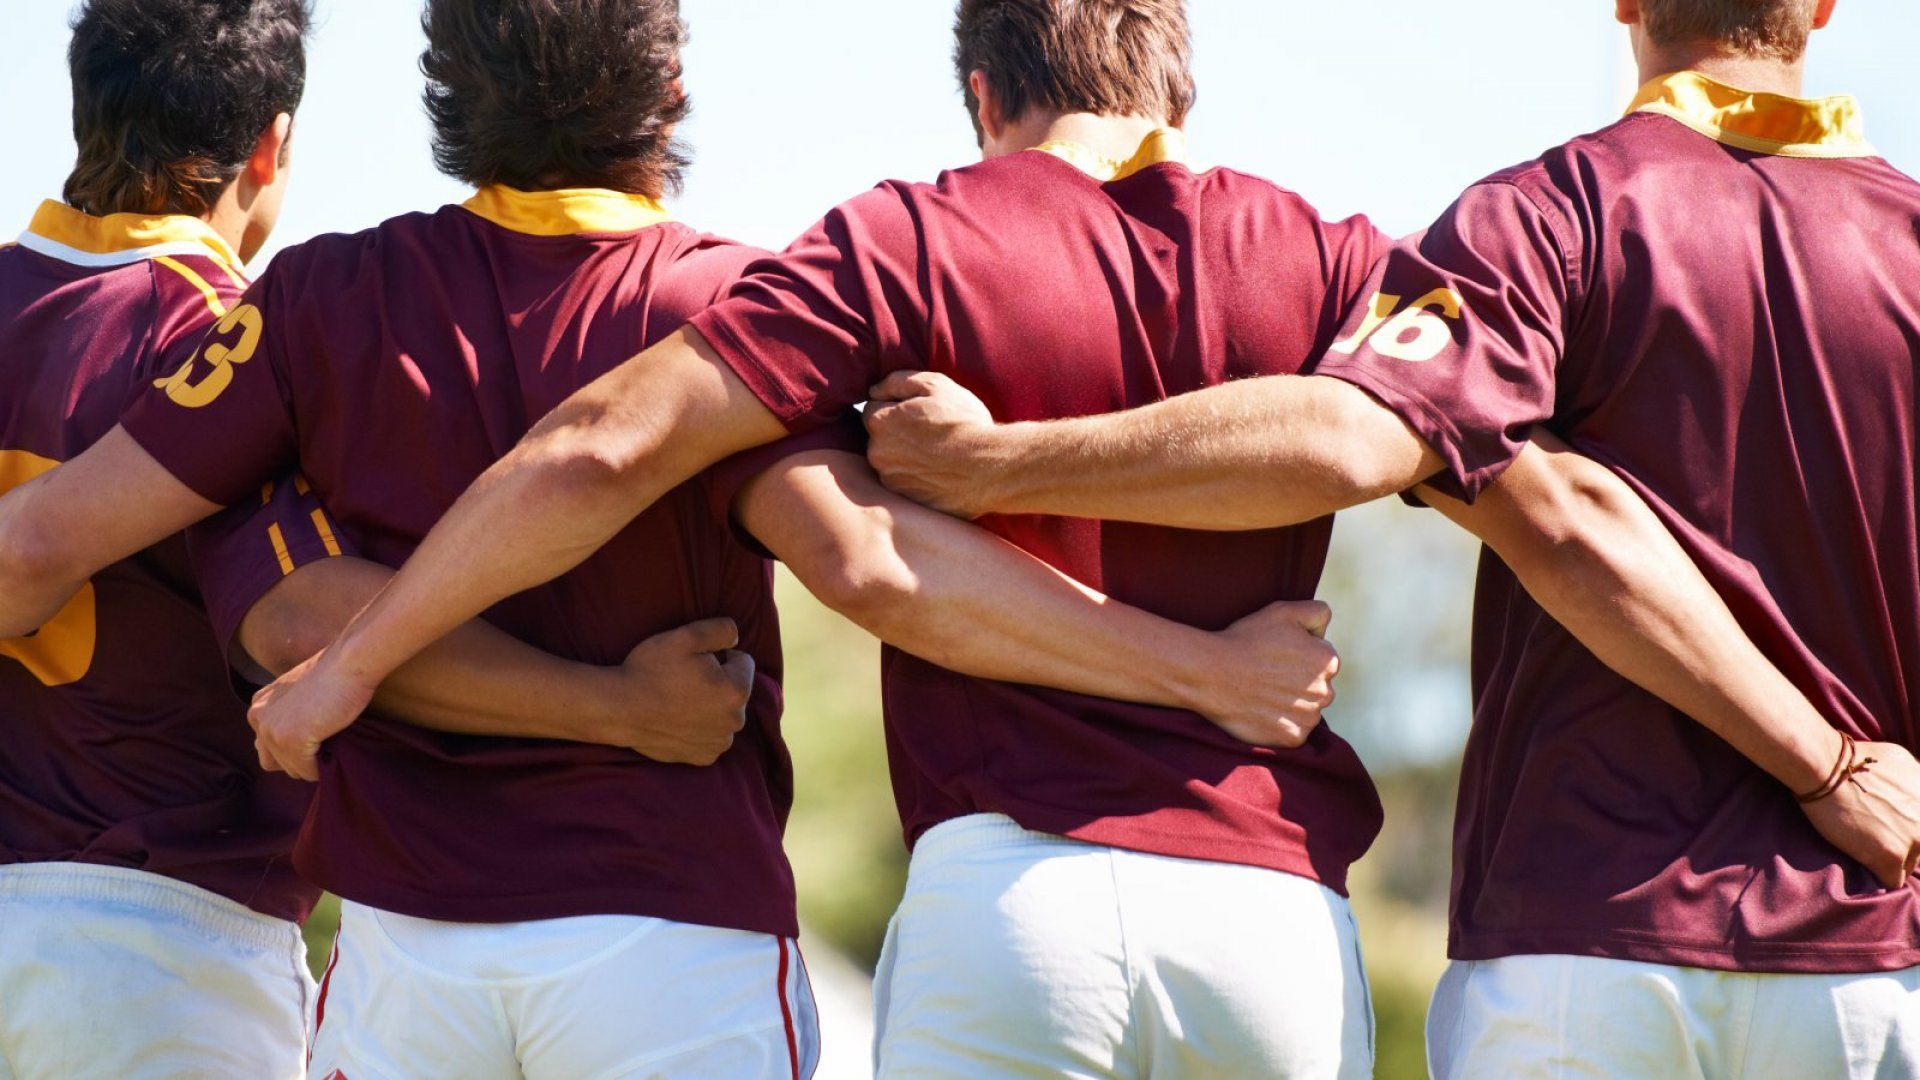 What the World's Best Team Can Teach Yours